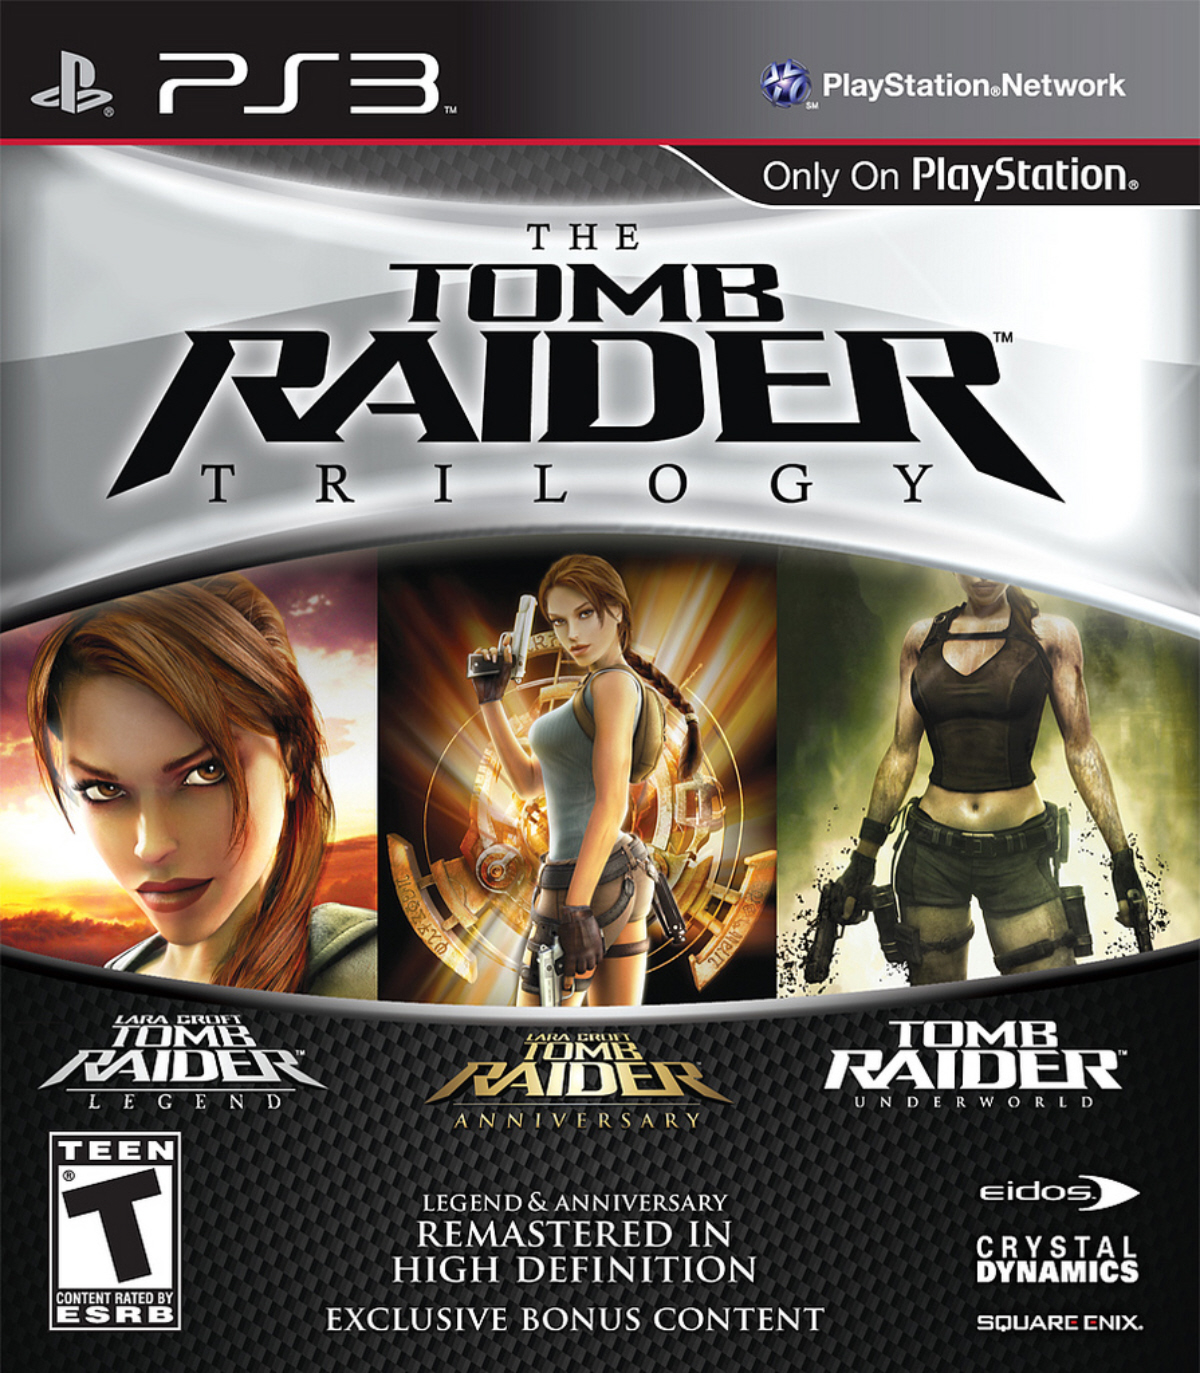 Tomb Raider Trilogy Strategywiki The Video Game Walkthrough And